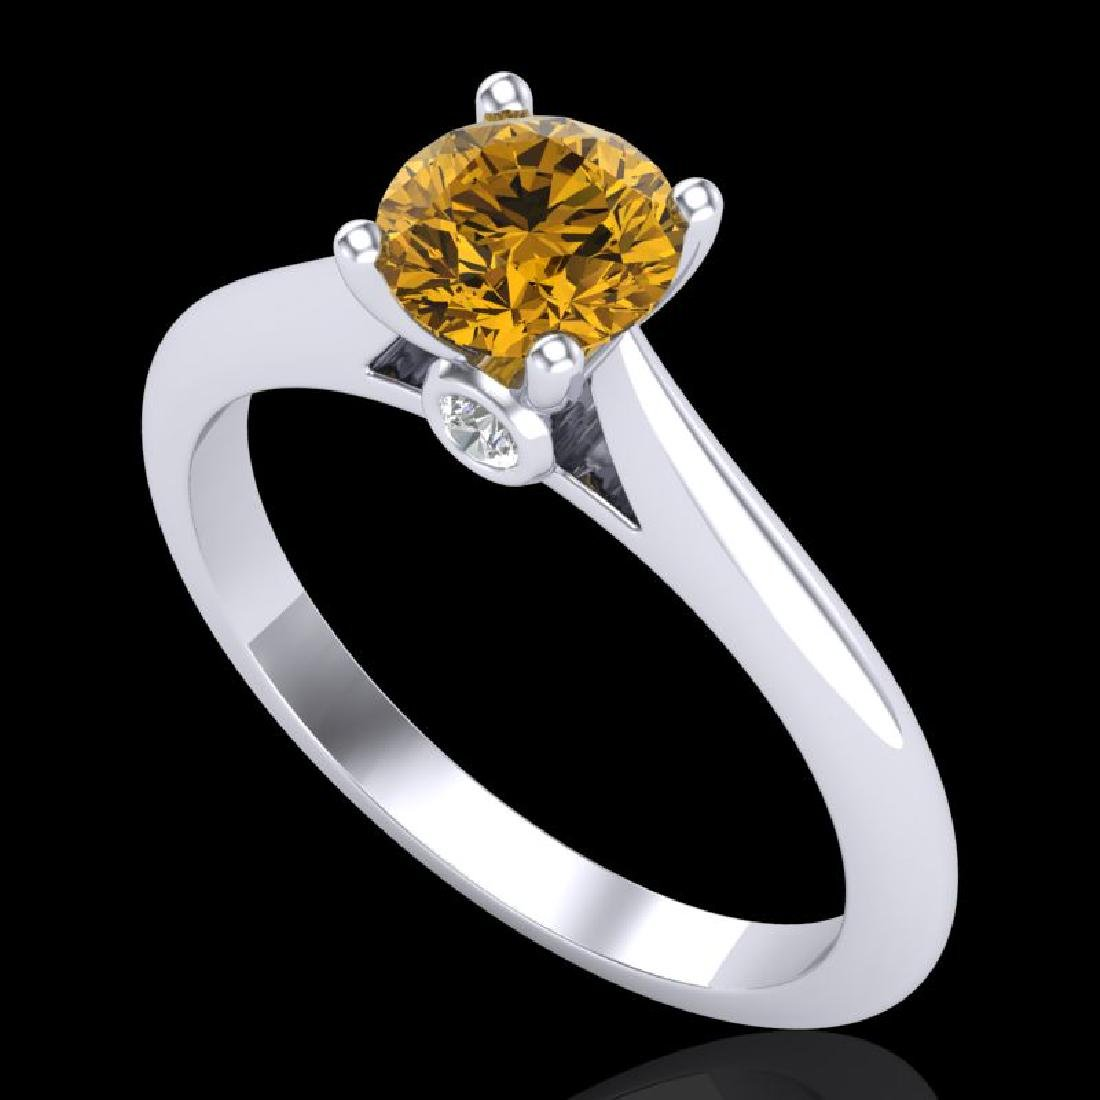 0.83 CTW Intense Fancy Yellow Diamond Engagement Art